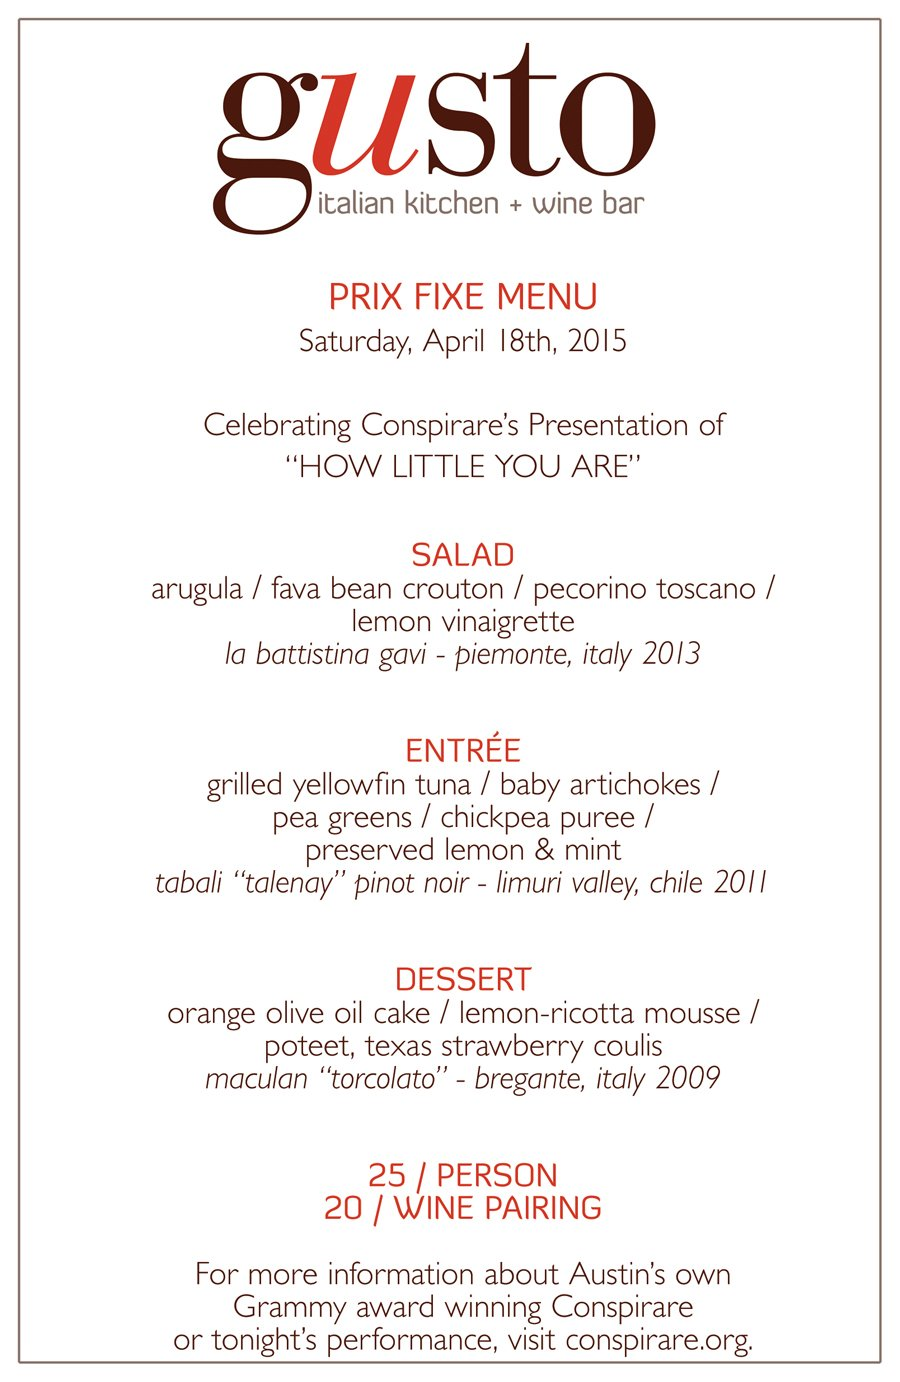 Special Gusto Prix Fixe Dinner Menu For Quot How Little You